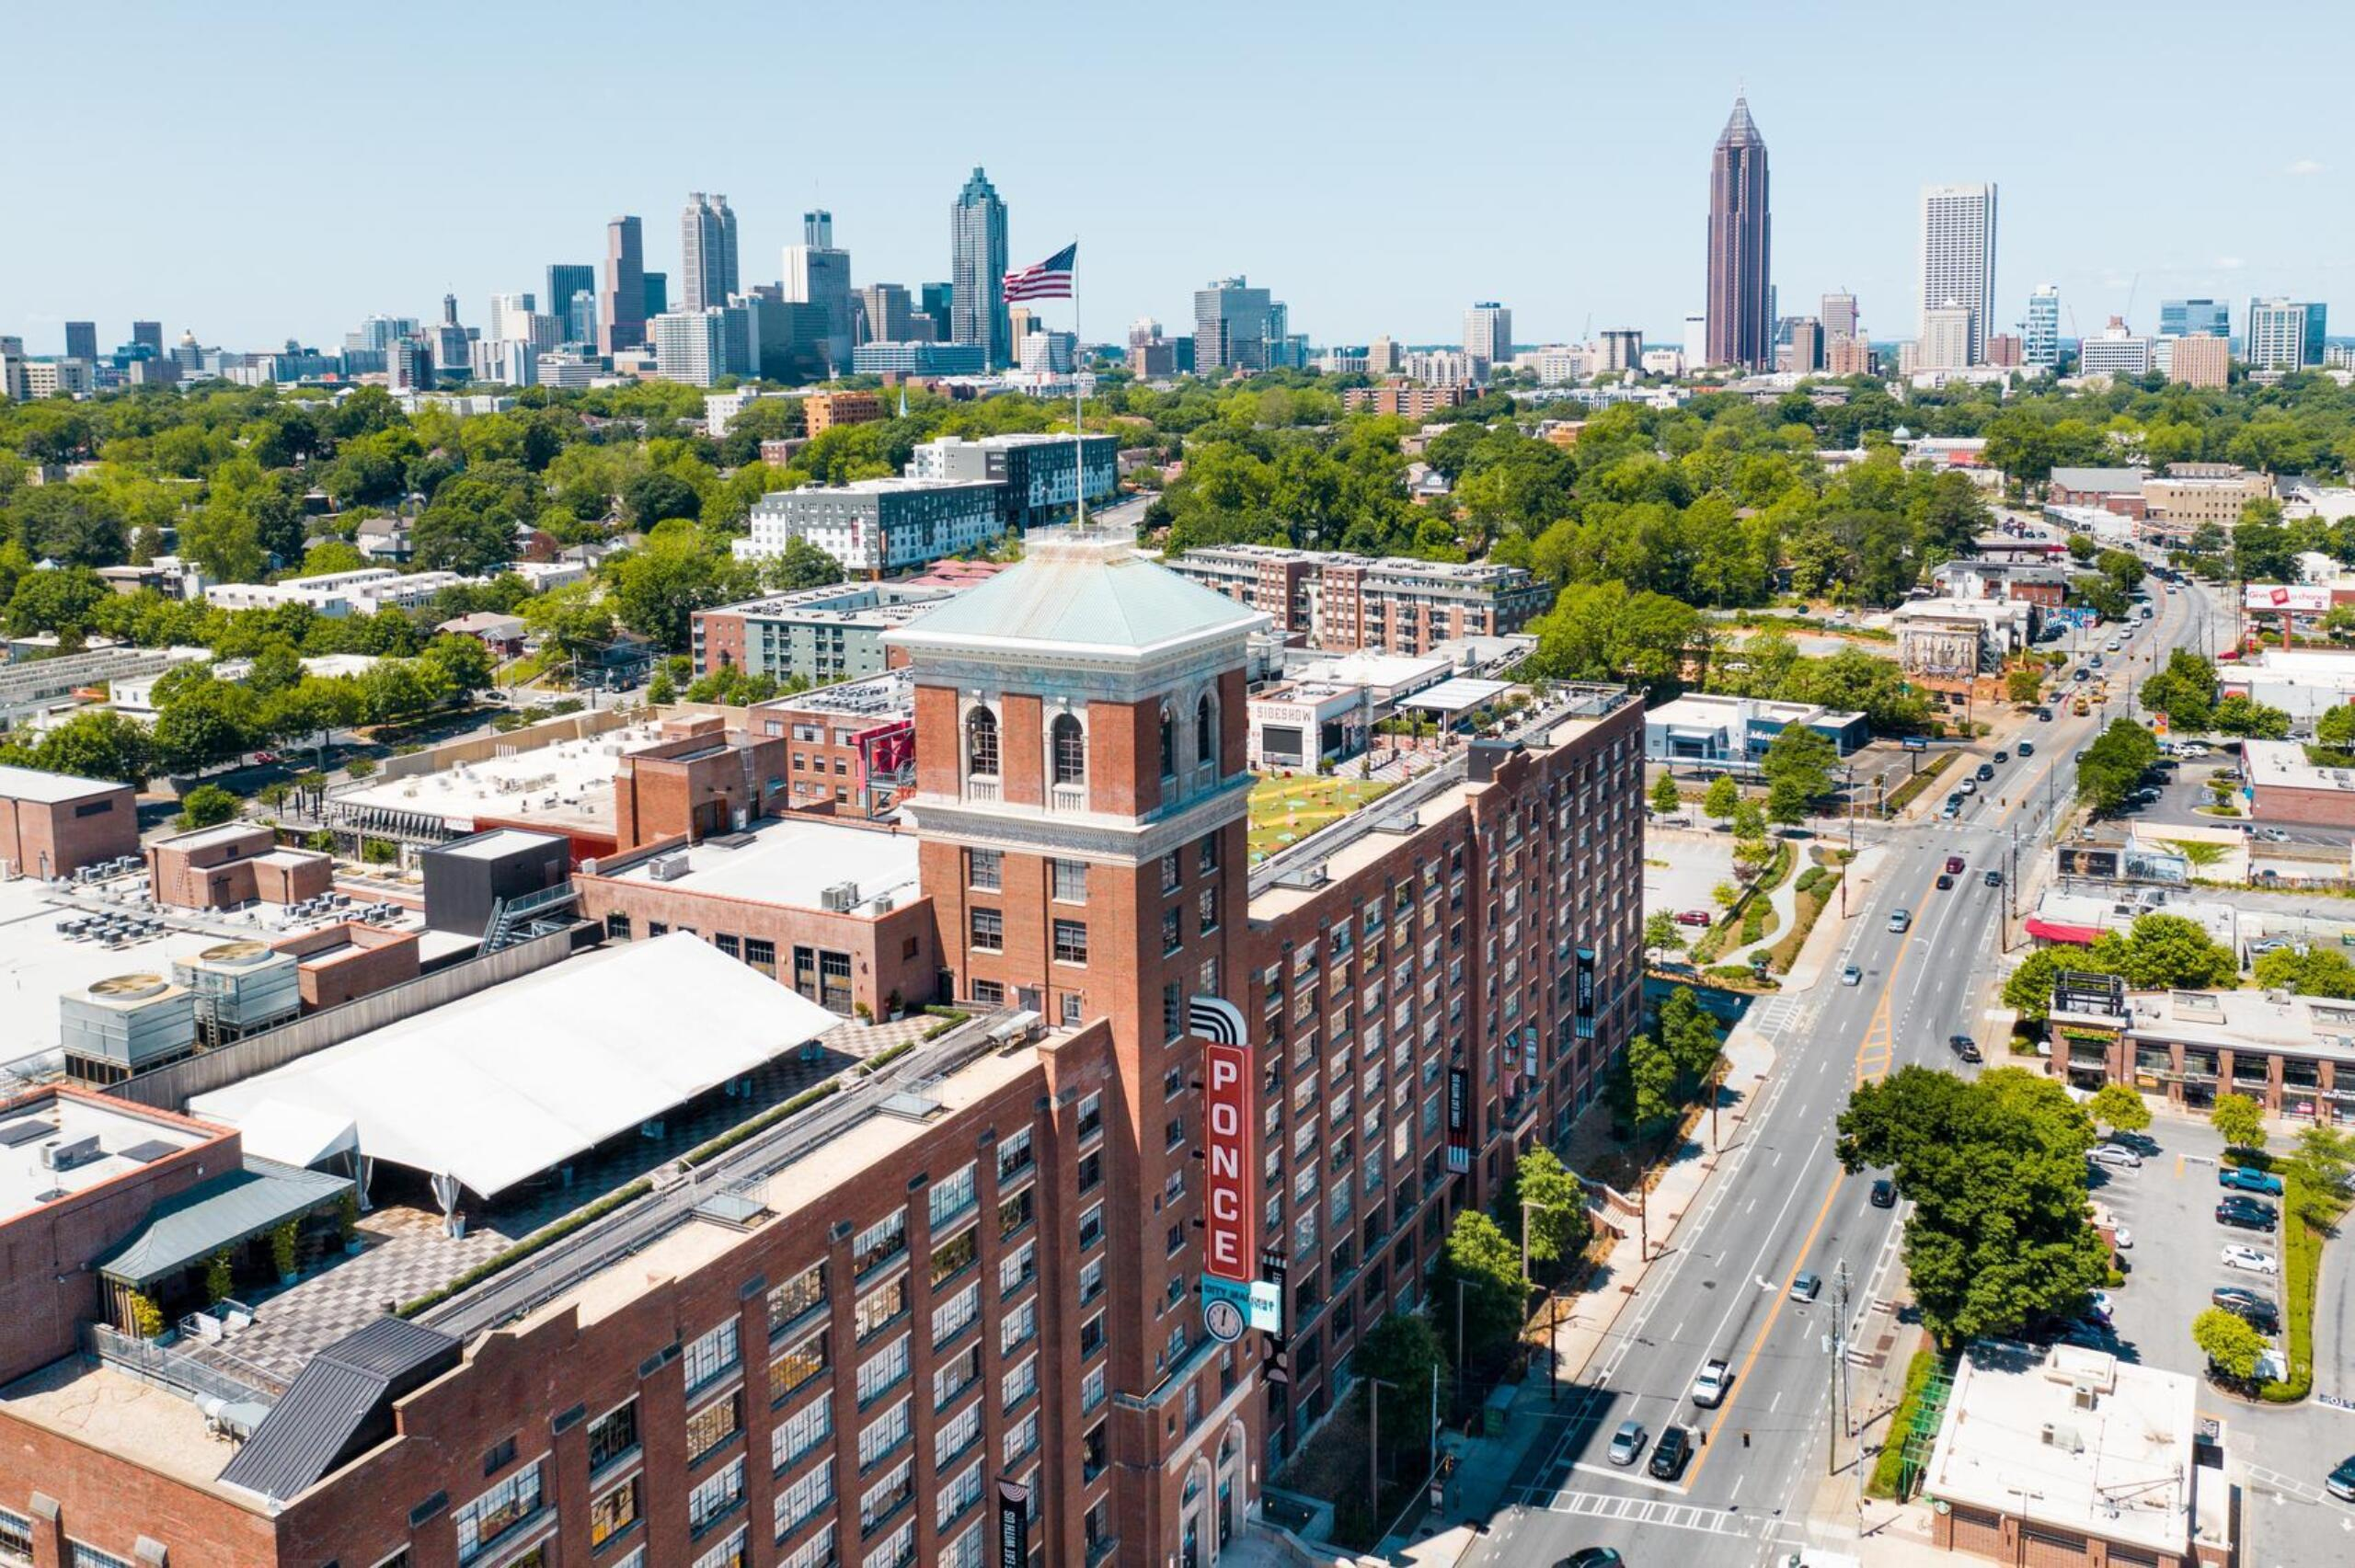 Aerial view of Ponce City Market and Ponce de Leon Avenue with Atlanta skyline in background